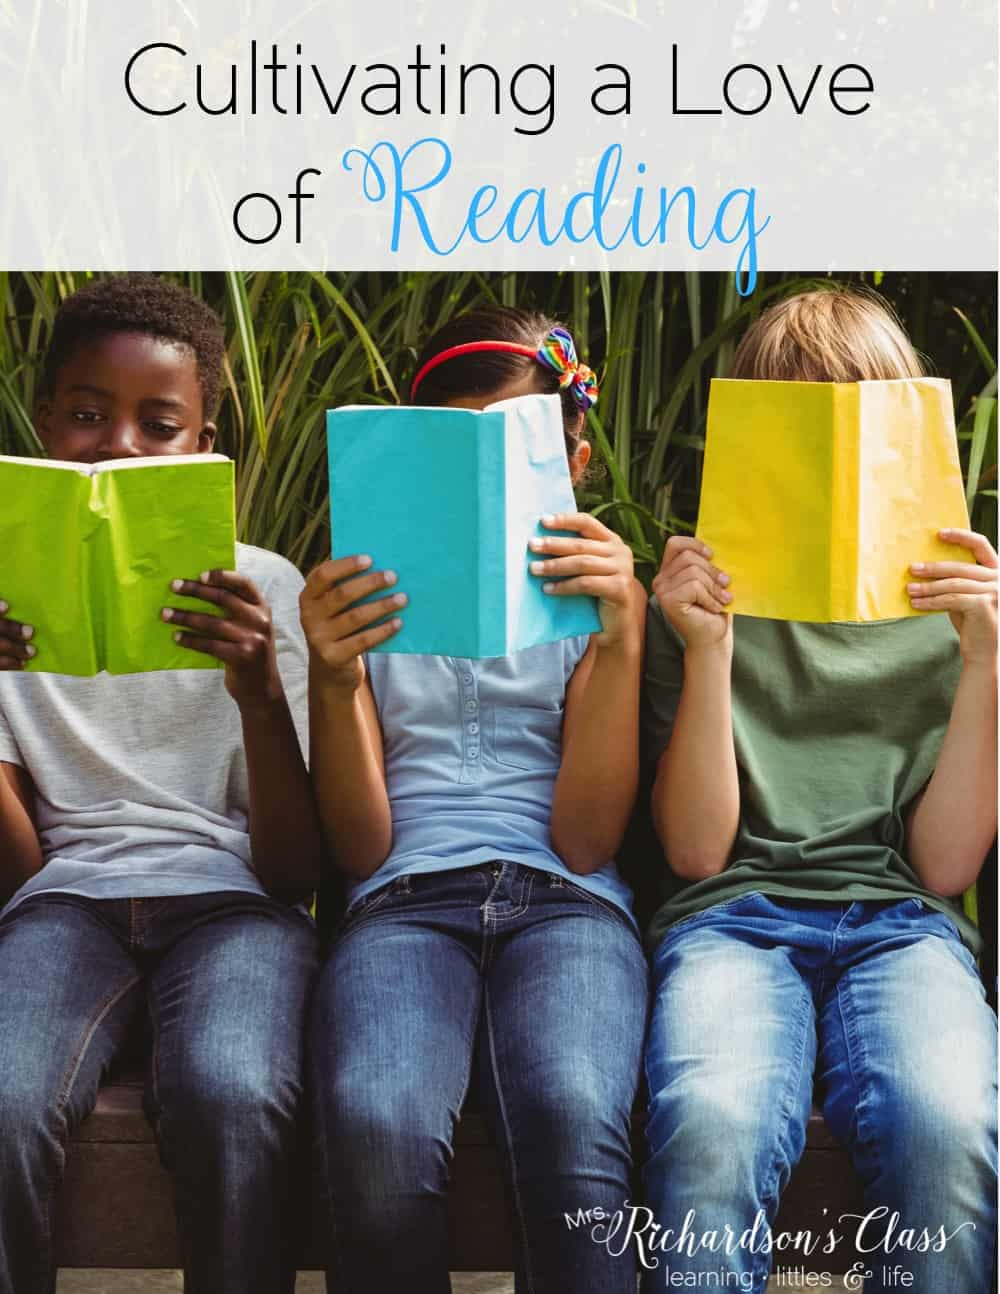 Cultivating a love of reading in your classroom is so important for students, especially when you are trying to teach them how to read. Read these simple tips that any teacher can do and grab the parent handout freebie so they can help cultivate a love of reading, too!  #loveofreading #read